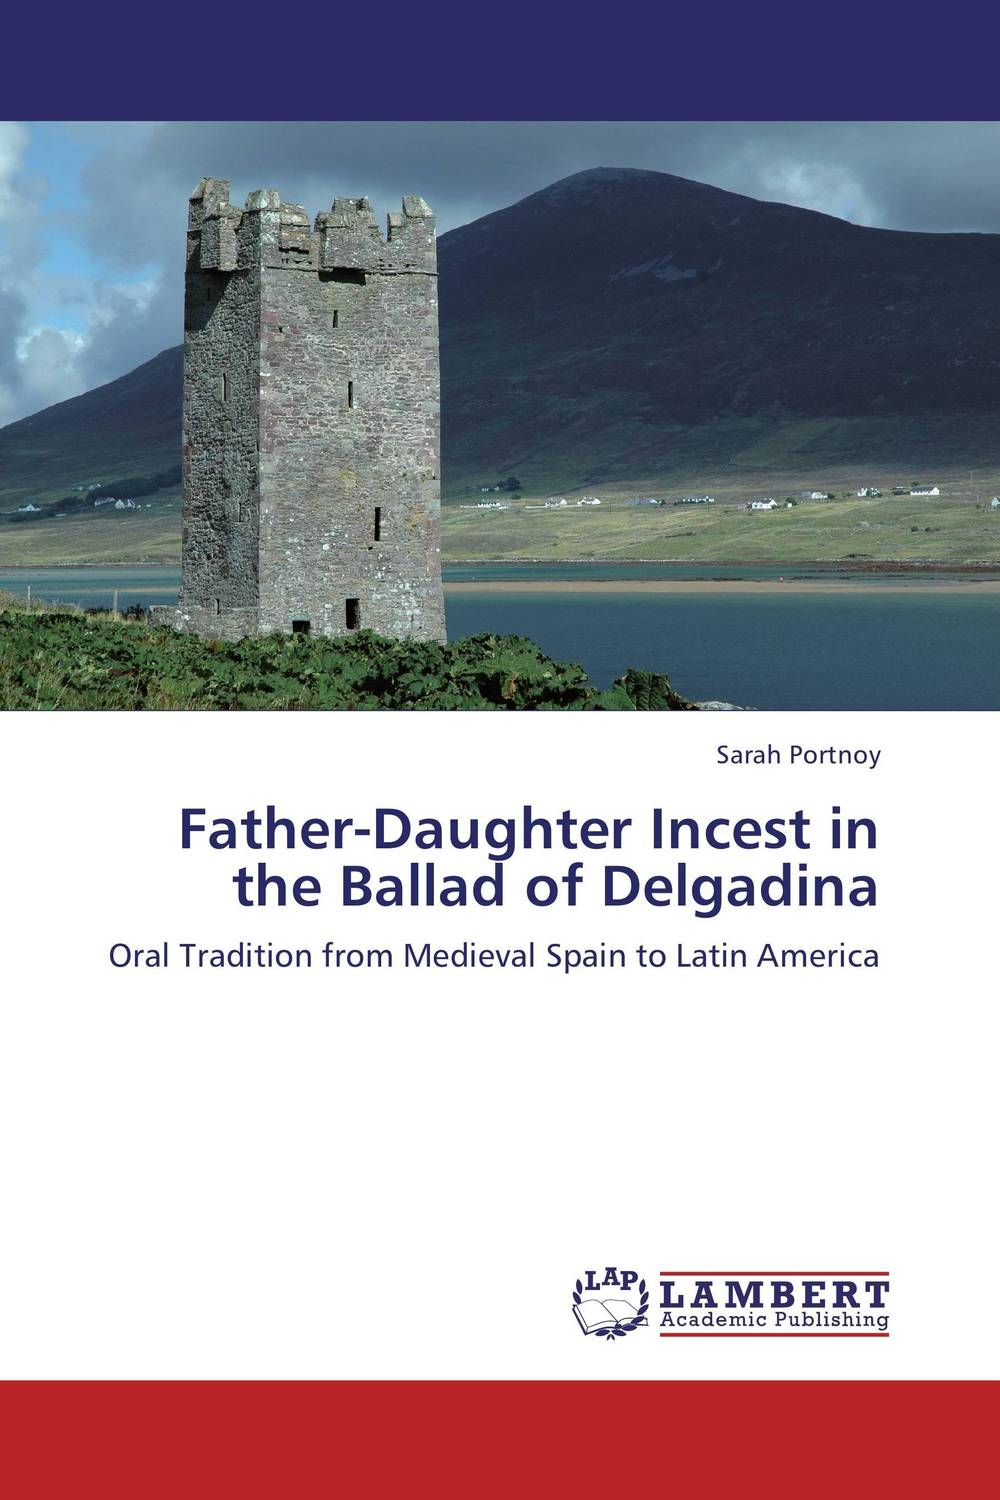 цена на Father-Daughter Incest in the Ballad of Delgadina